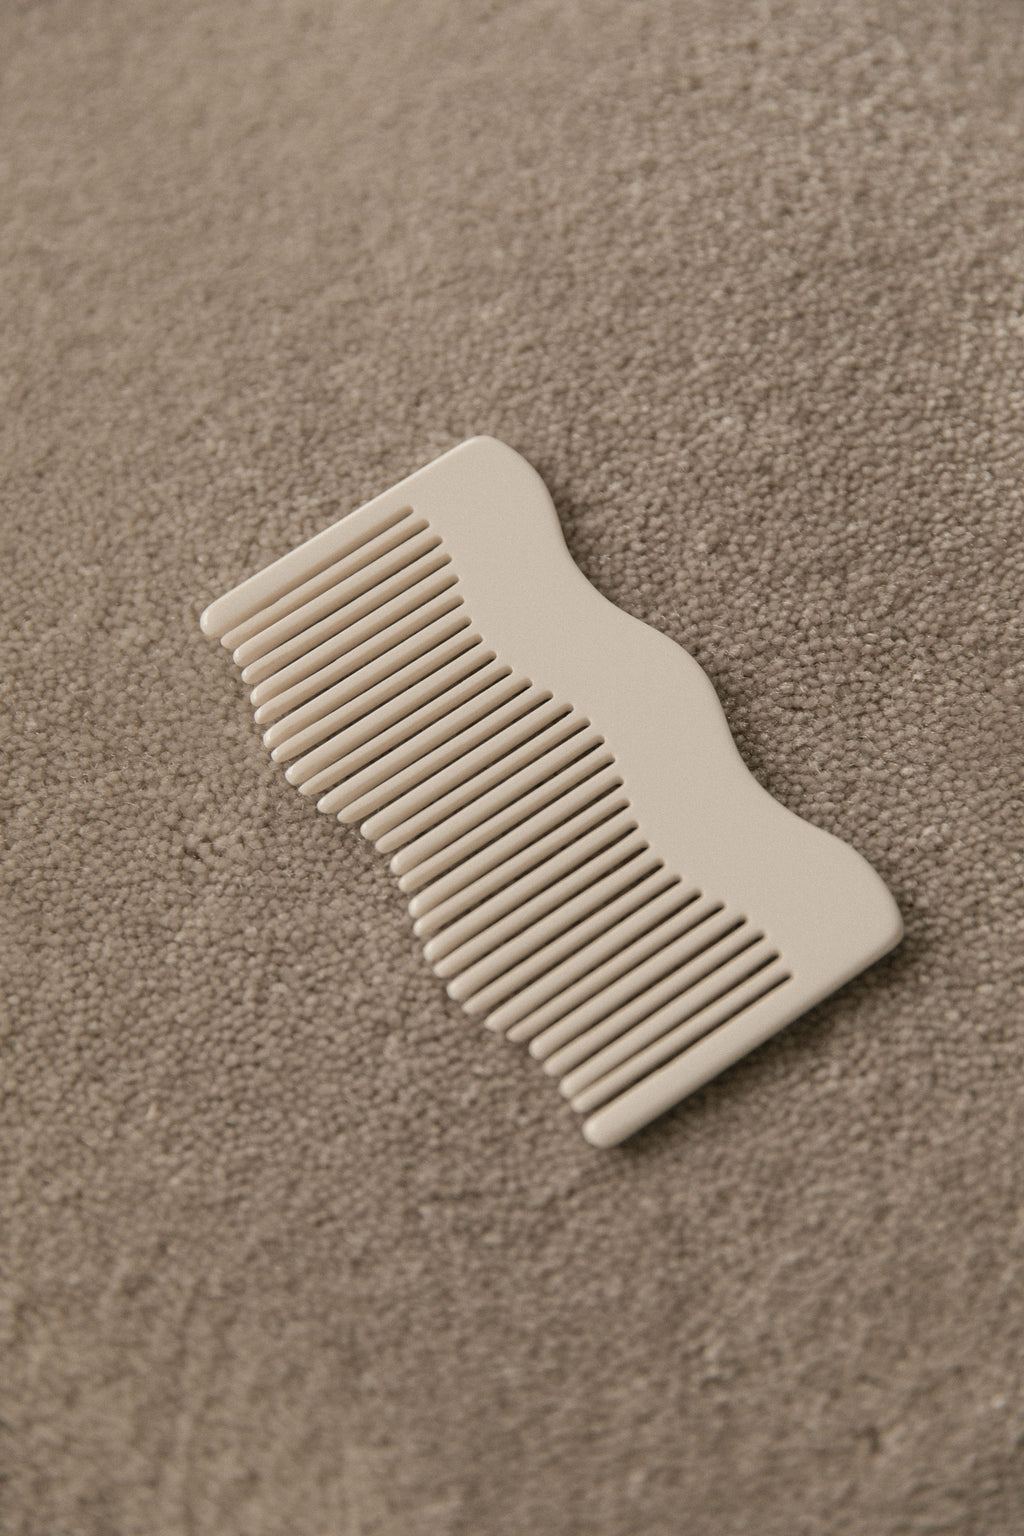 Winden Bowie Comb - Cream